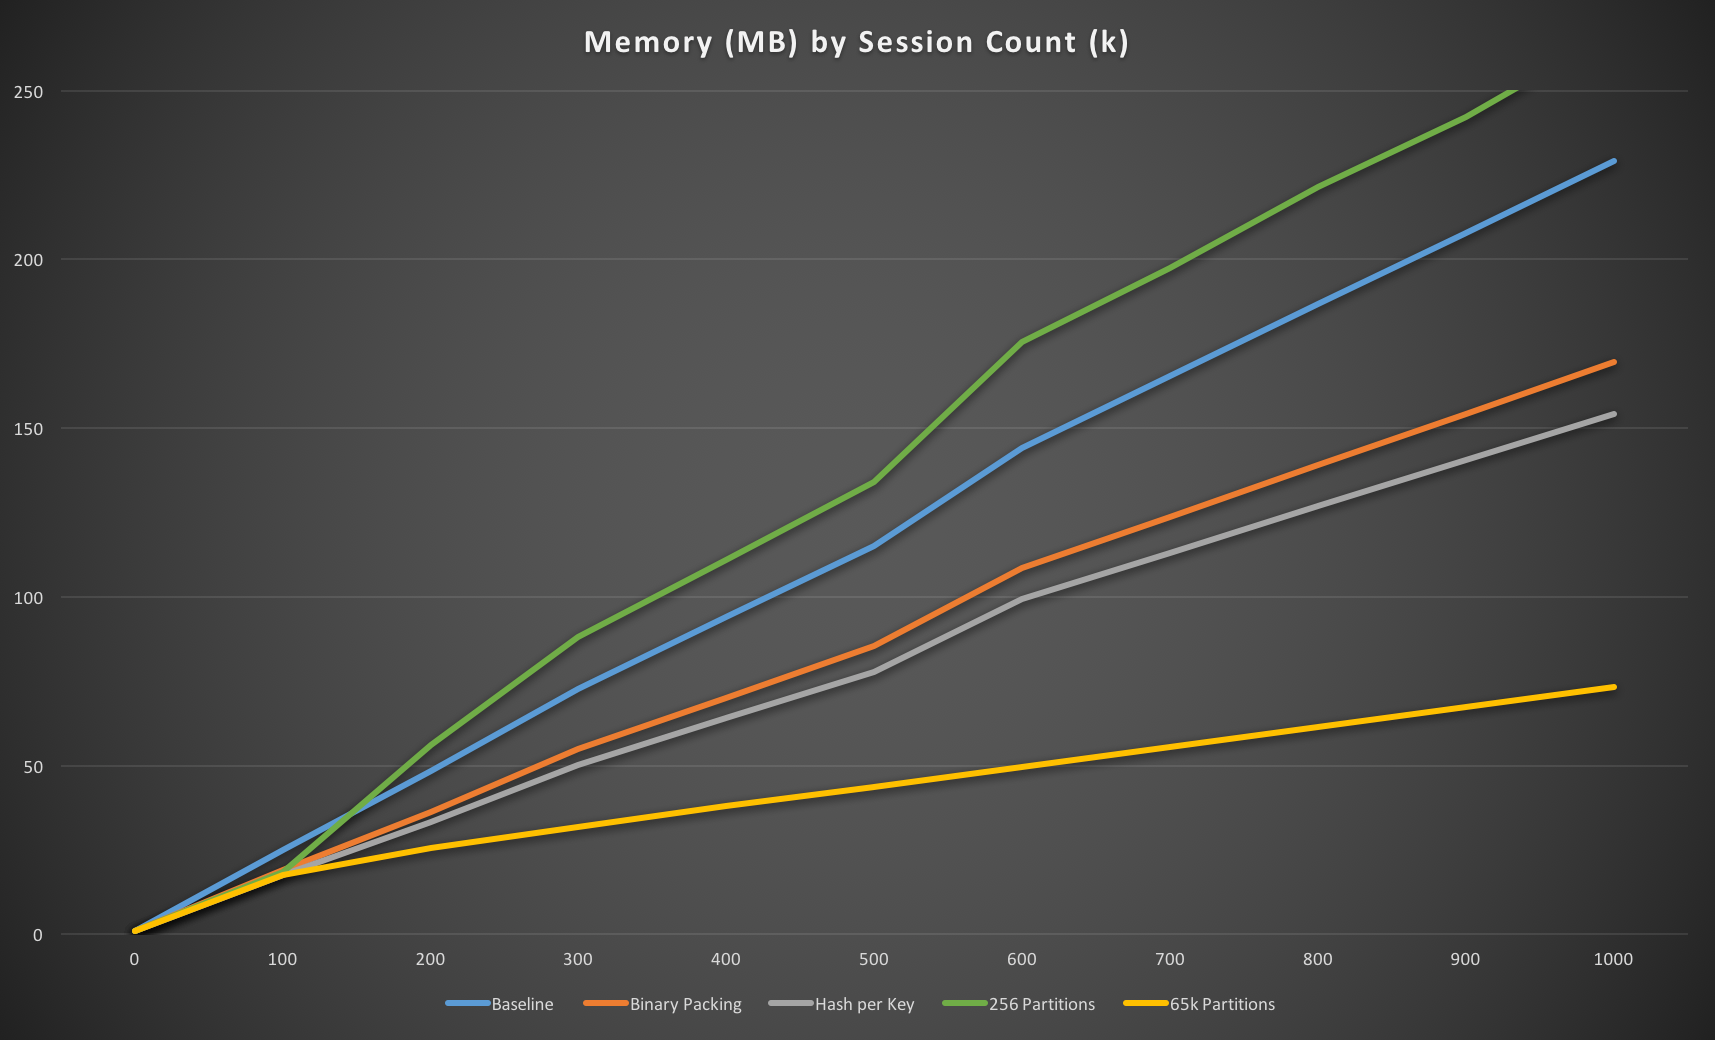 65k partitions memory usage